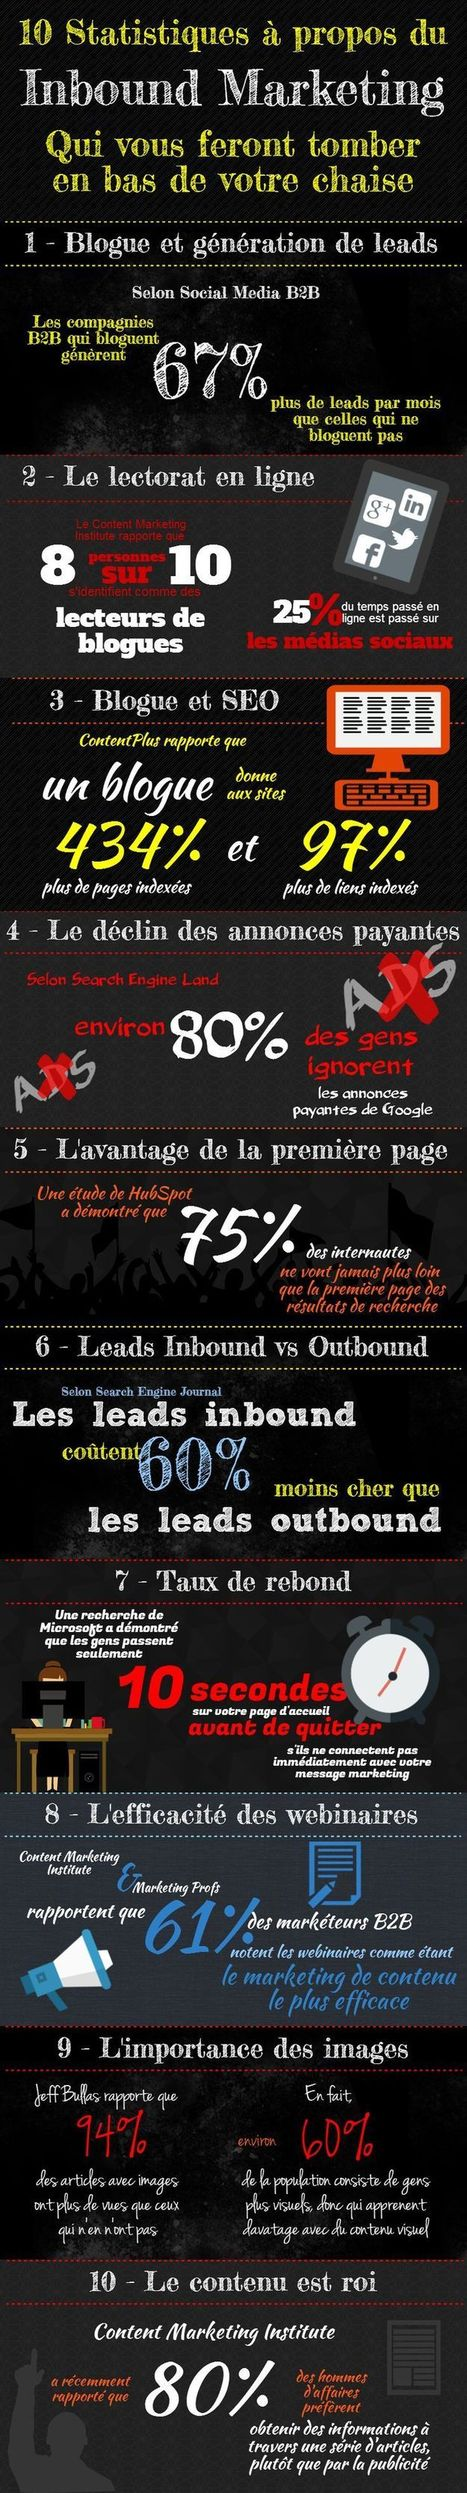 10 statistiques qui prouvent l'efficacité de l'Inbound Marketing - Le Blog Kinoa | Digital Martketing 101 | Scoop.it